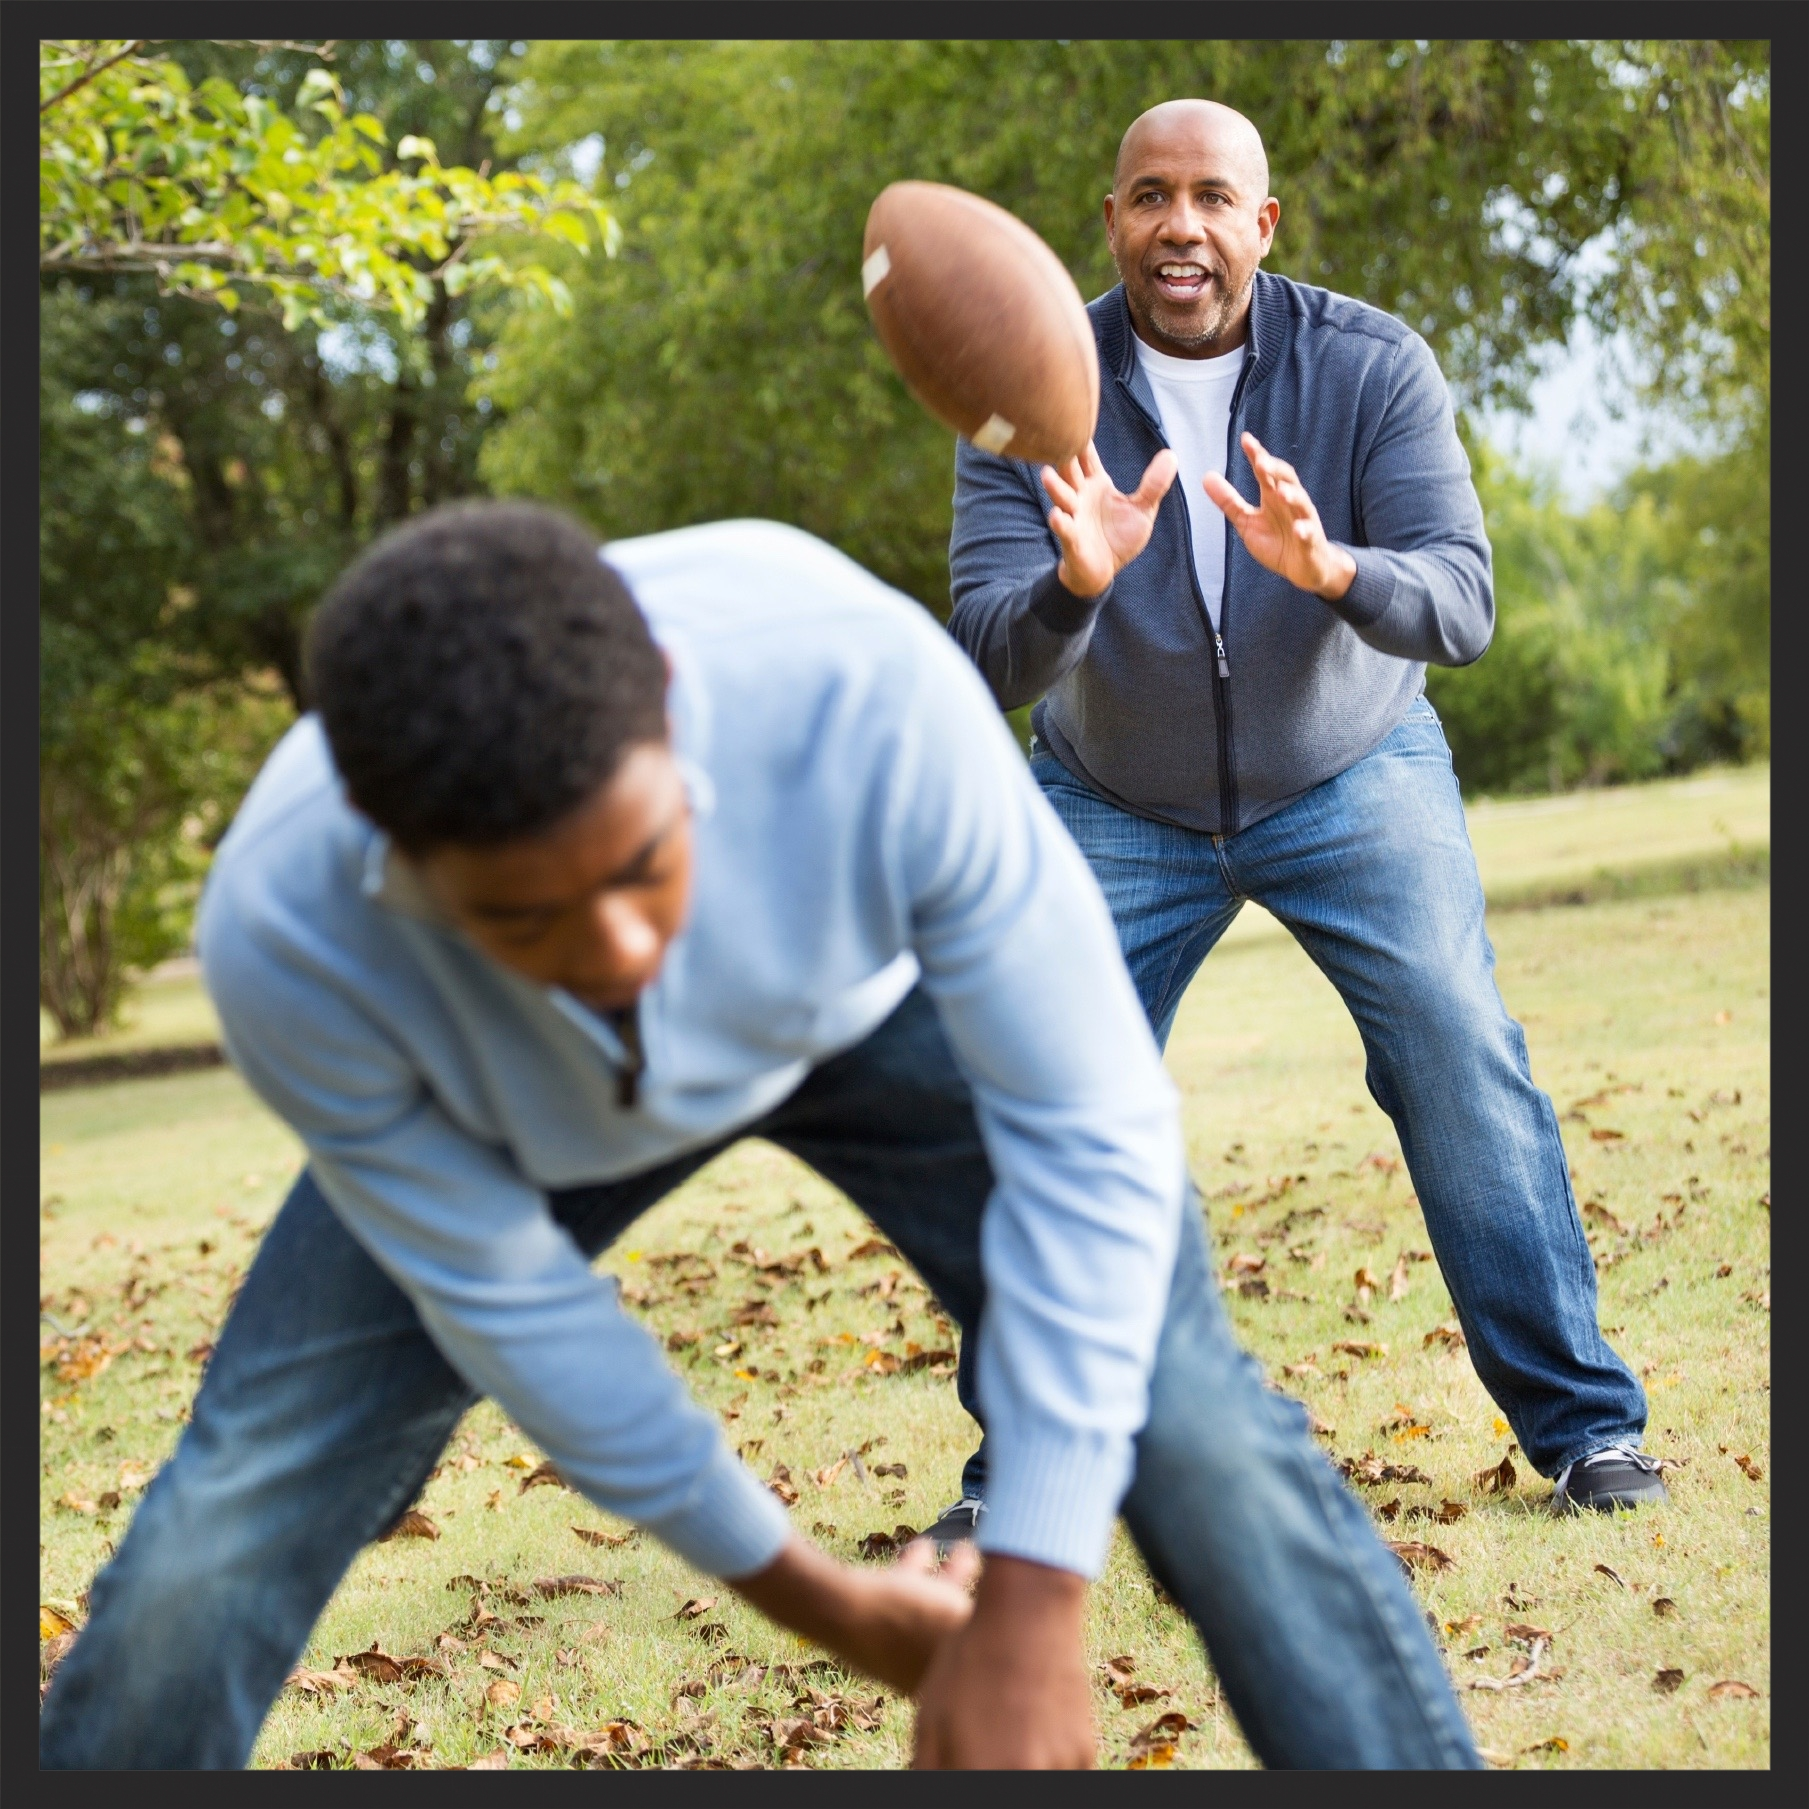 men playing football together